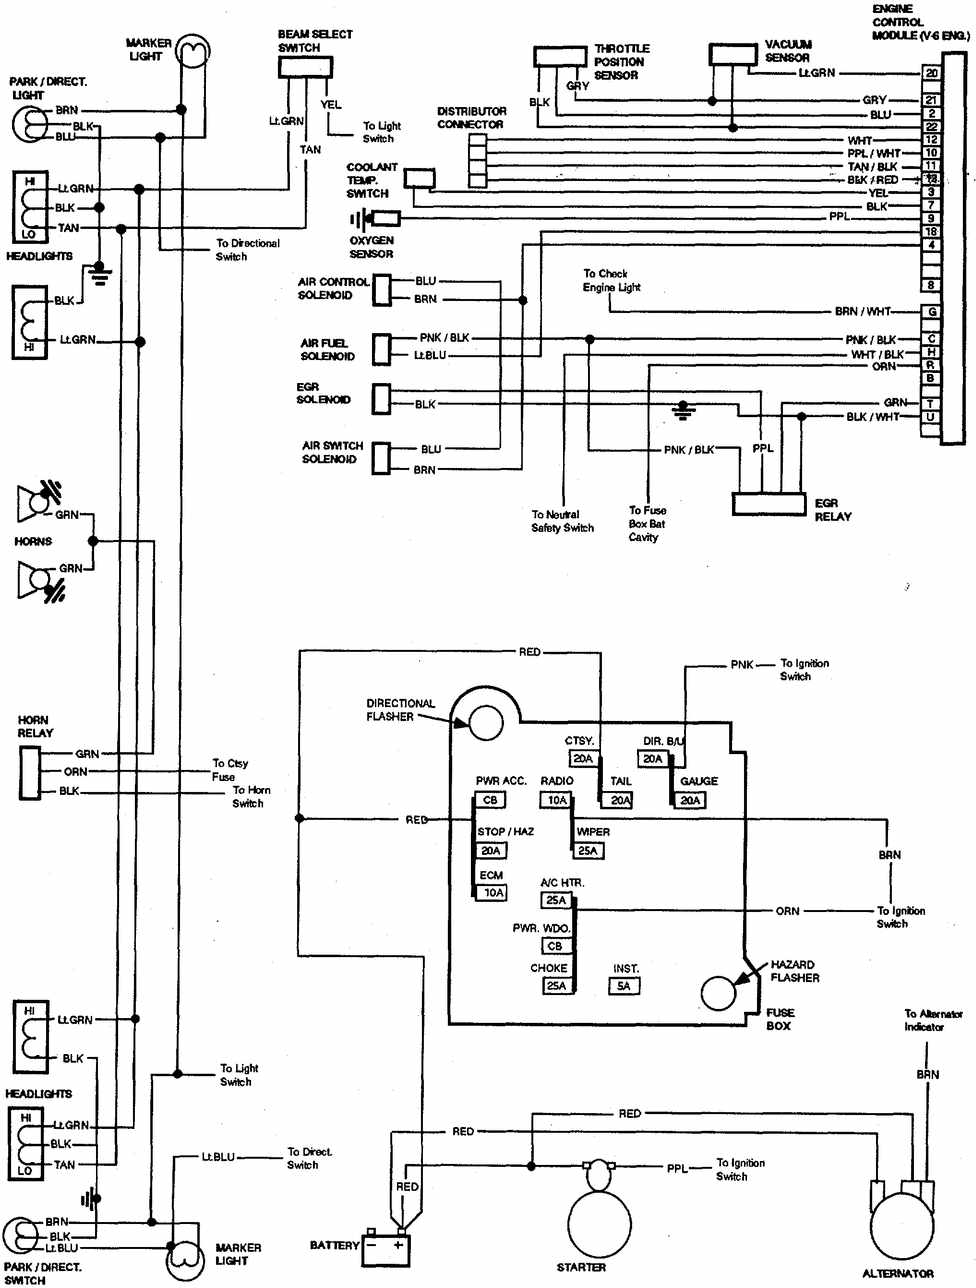 chevrolet v8 trucks 1981 1987 electrical wiring diagram 2006 rav4 engine compartment diagram 1976 corvette engine compartment diagram #6